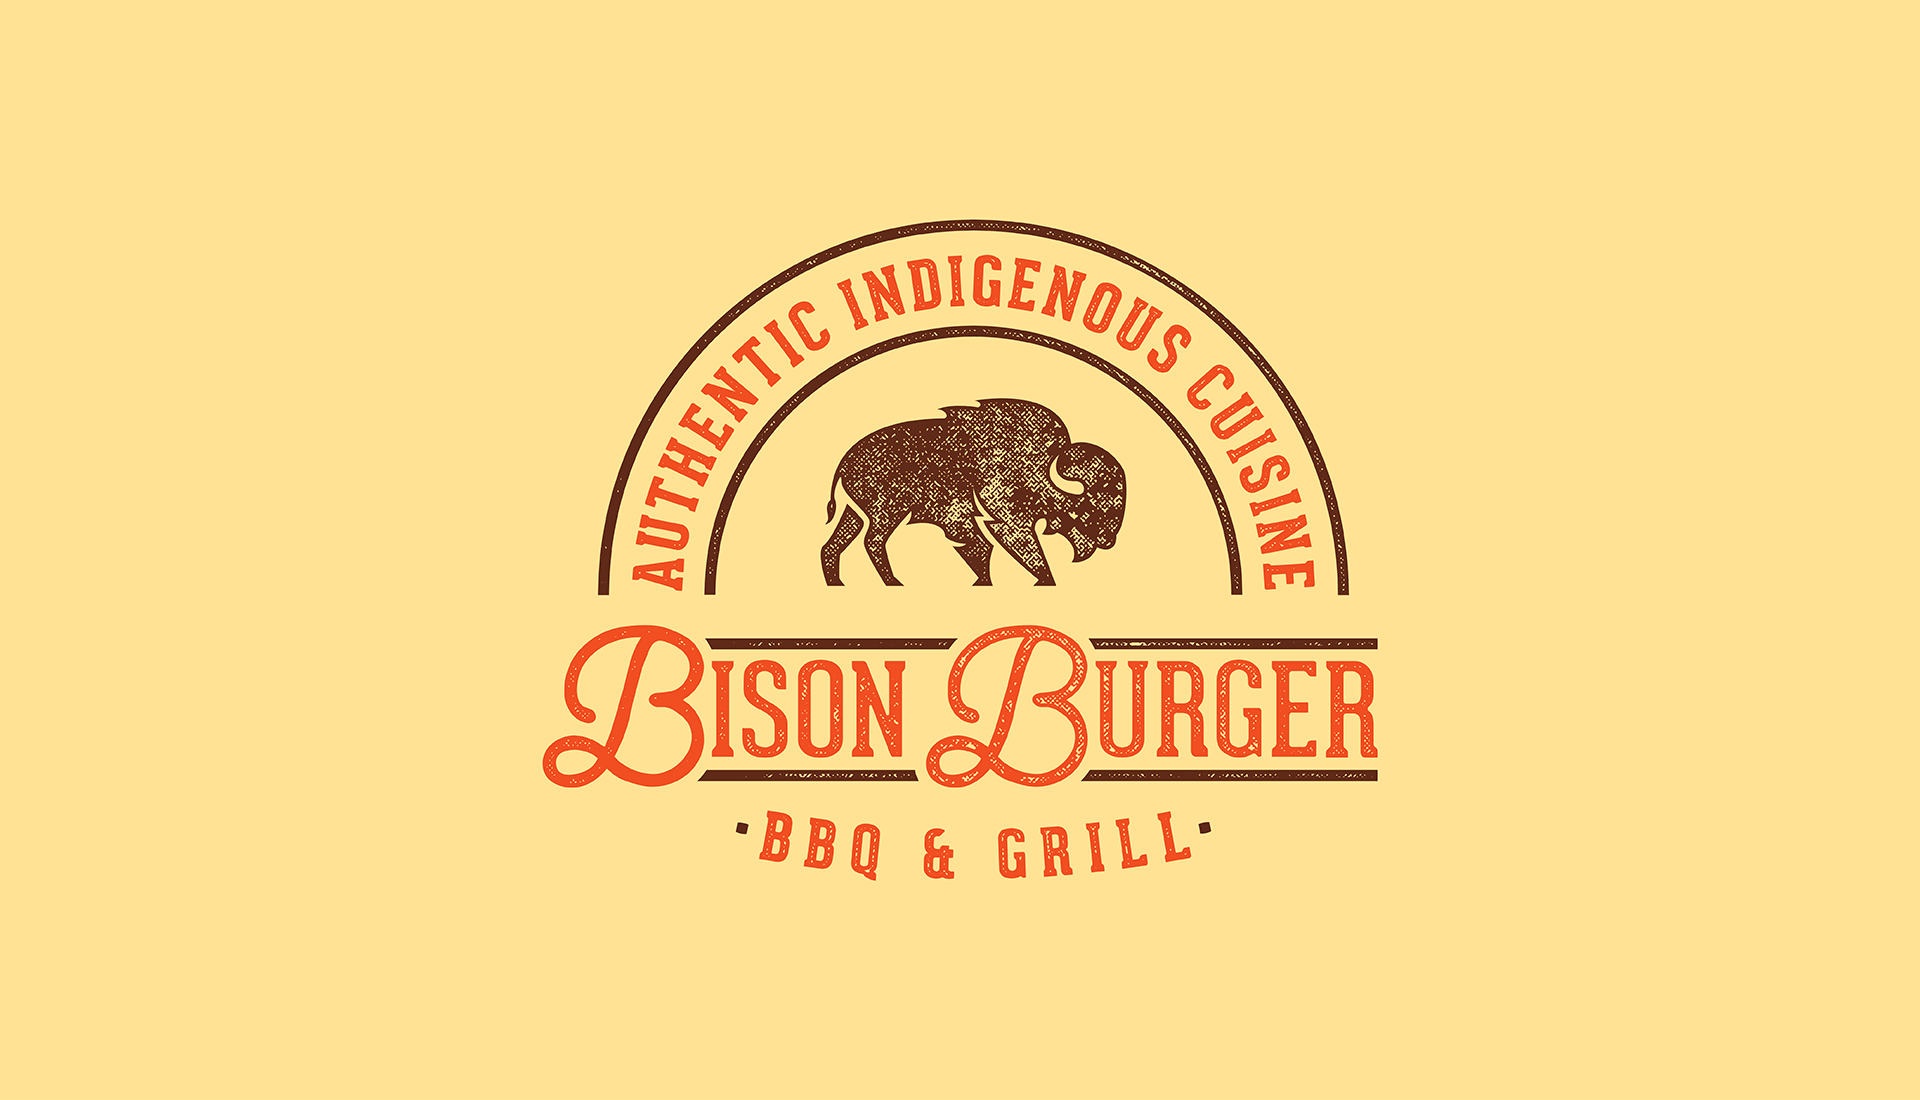 Bison Burger BBQ & Grill | Secondary Logo, Authentic Indigenous Cuisine